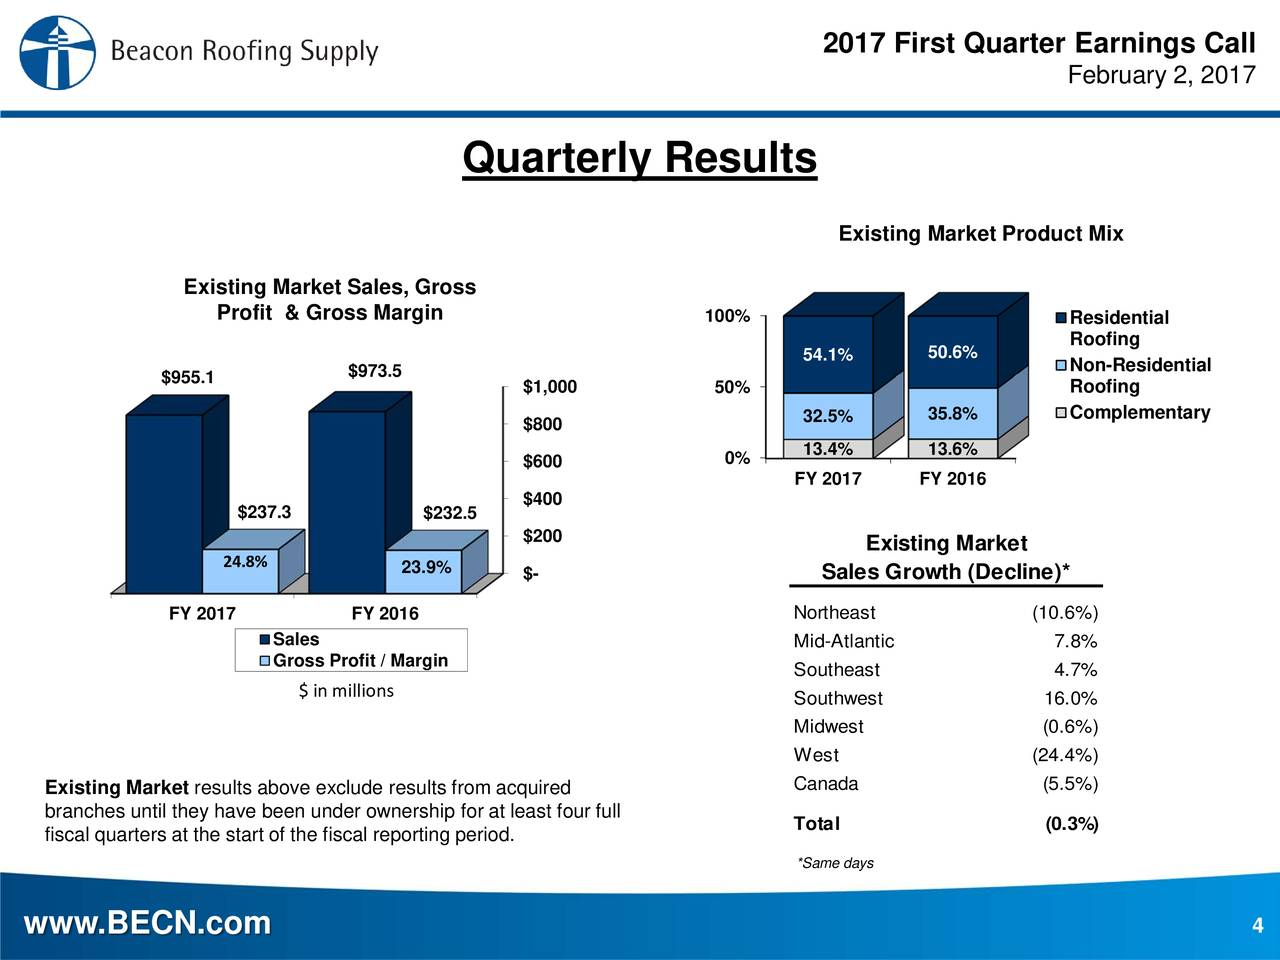 Beacon Roofing Supply, Inc. 2017 Q1   Results   Earnings Call Slides